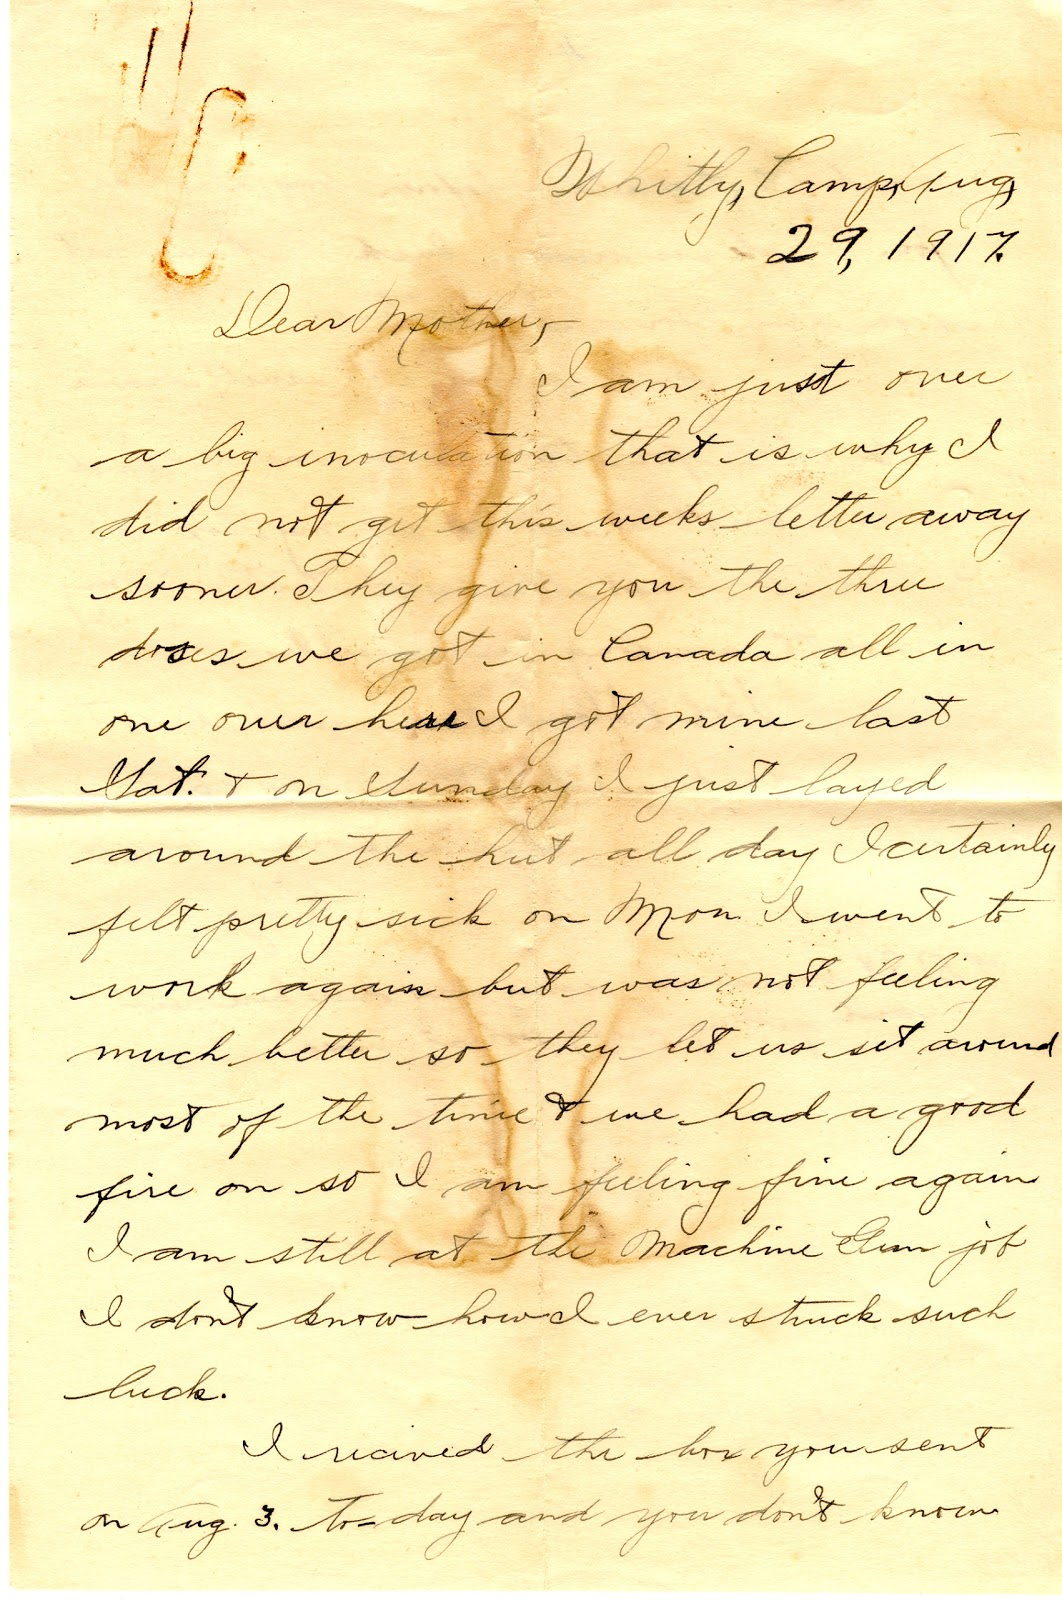 Letters From World War One August 29 1917 Witley Camp